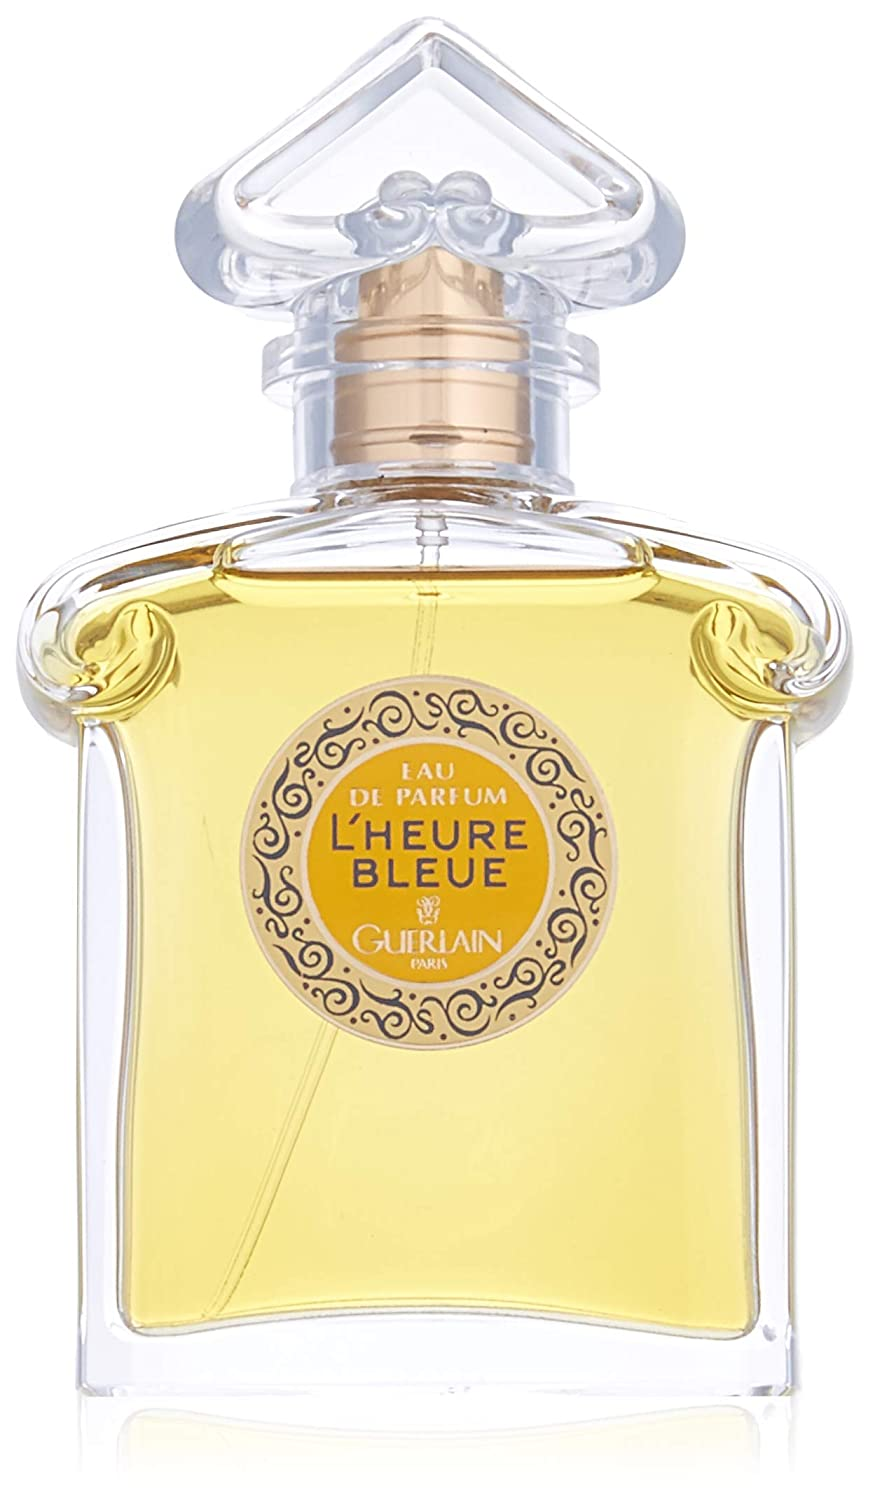 Guerlain L'Heure Bleue Eau De Parfum Spray - 75ml/2.5oz : Guerlain Ladies Fragrance BHBAZUSF0518A3965